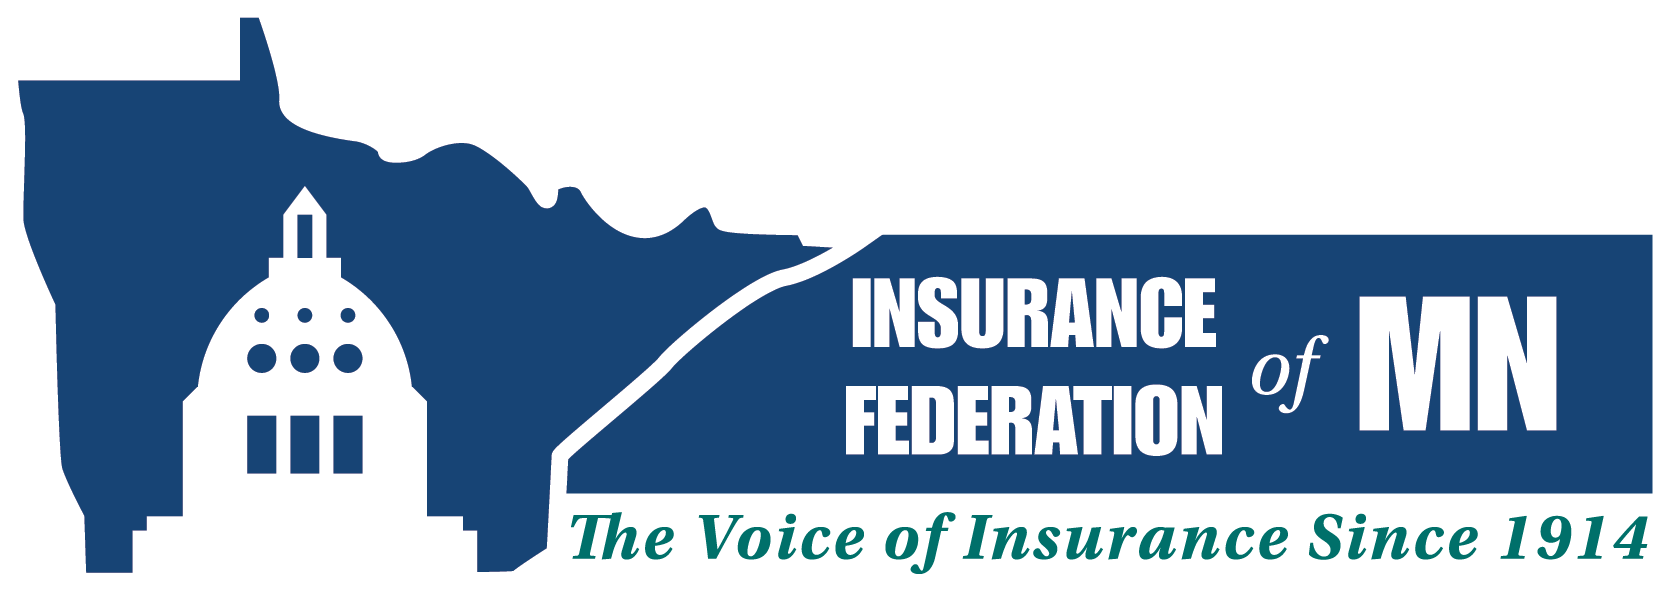 Insurance Federation of Minnesota